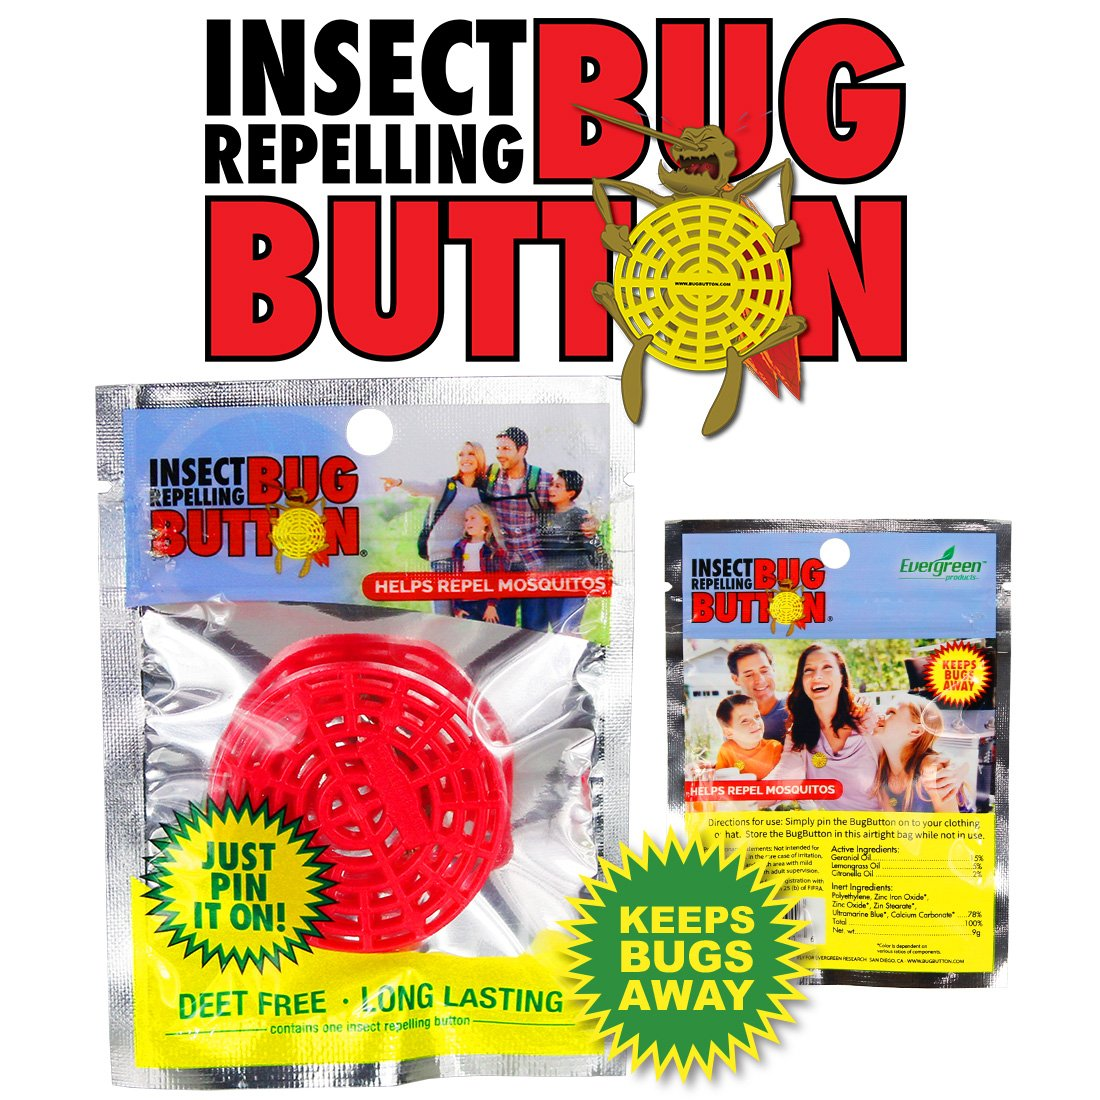 BUG BUTTON - All Natural Mosquito Repelling Badge - Guaranteed to Work - No Messy Lotions, Sprays, or Plastic - Fast & Easy! 30 Day Money Back Guarantee (200) by Superband (Image #9)